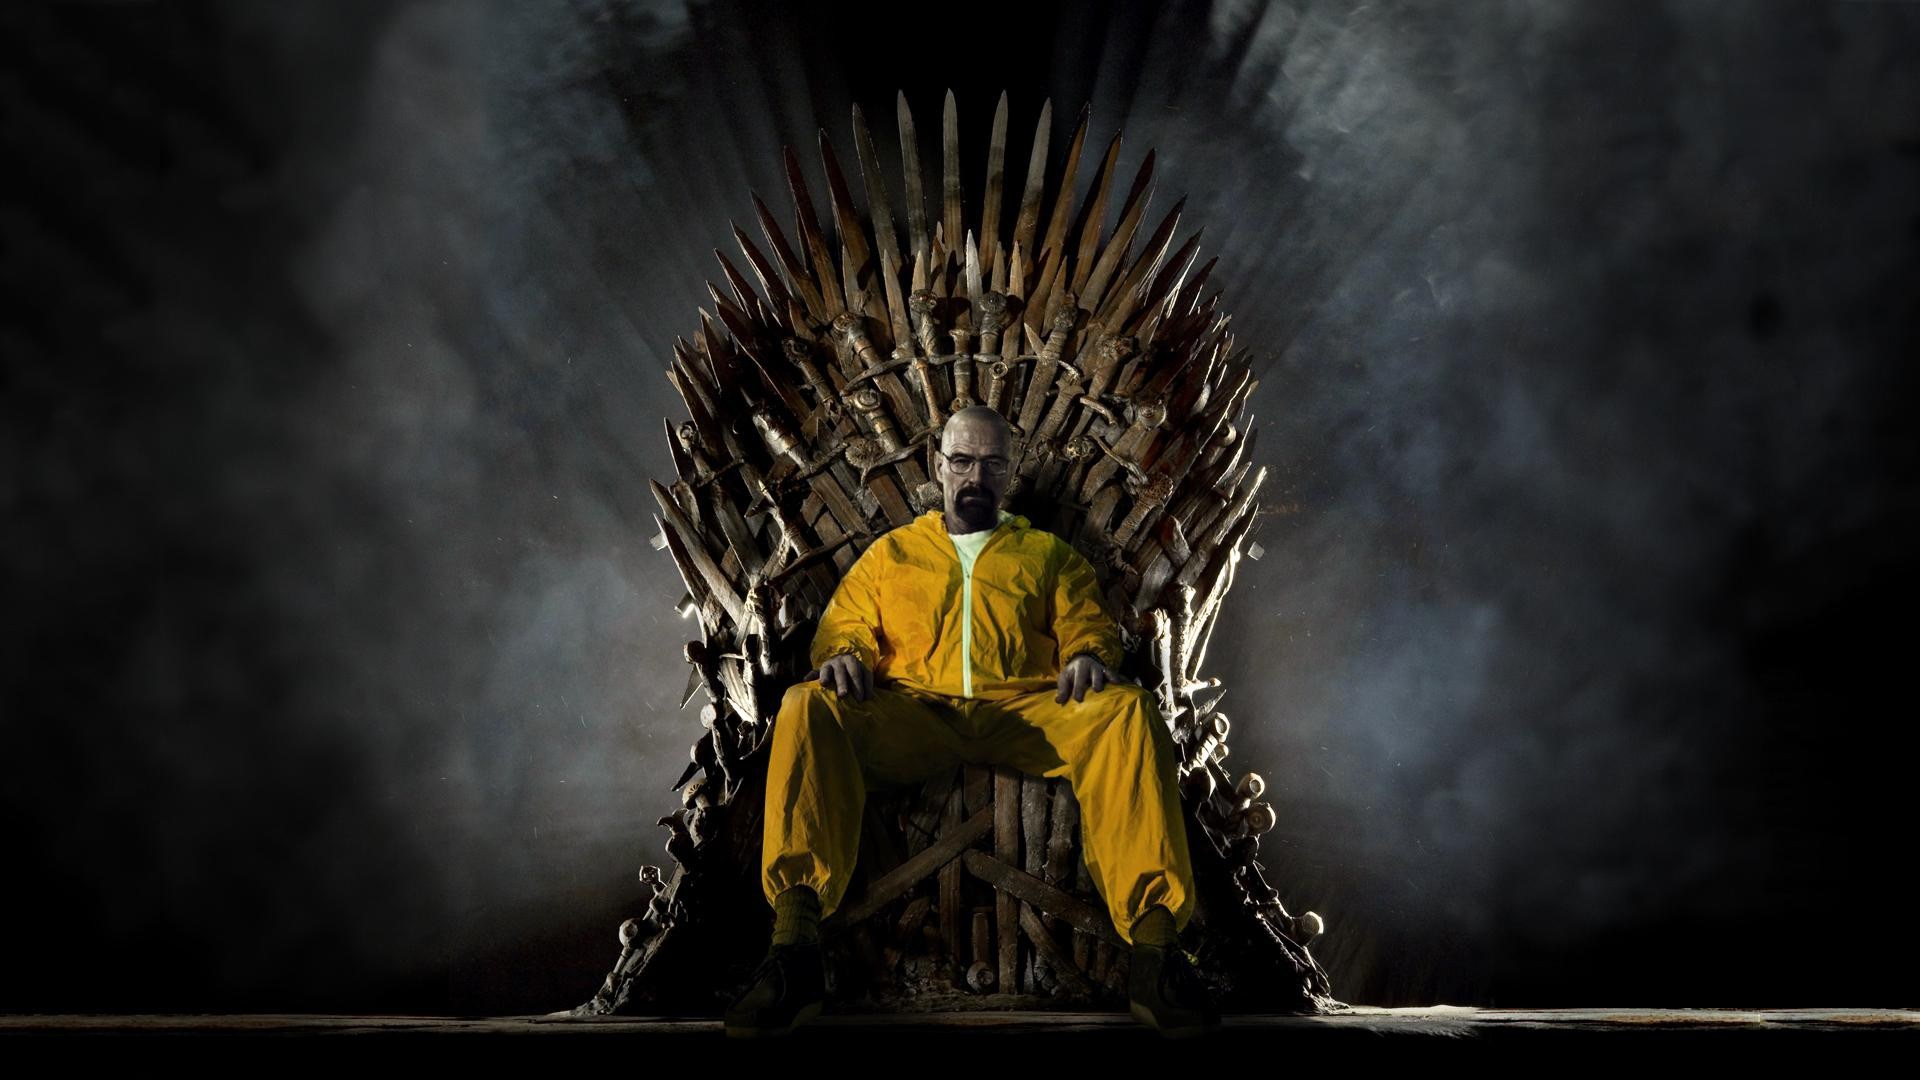 Game Of Thrones Throne Wallpaper